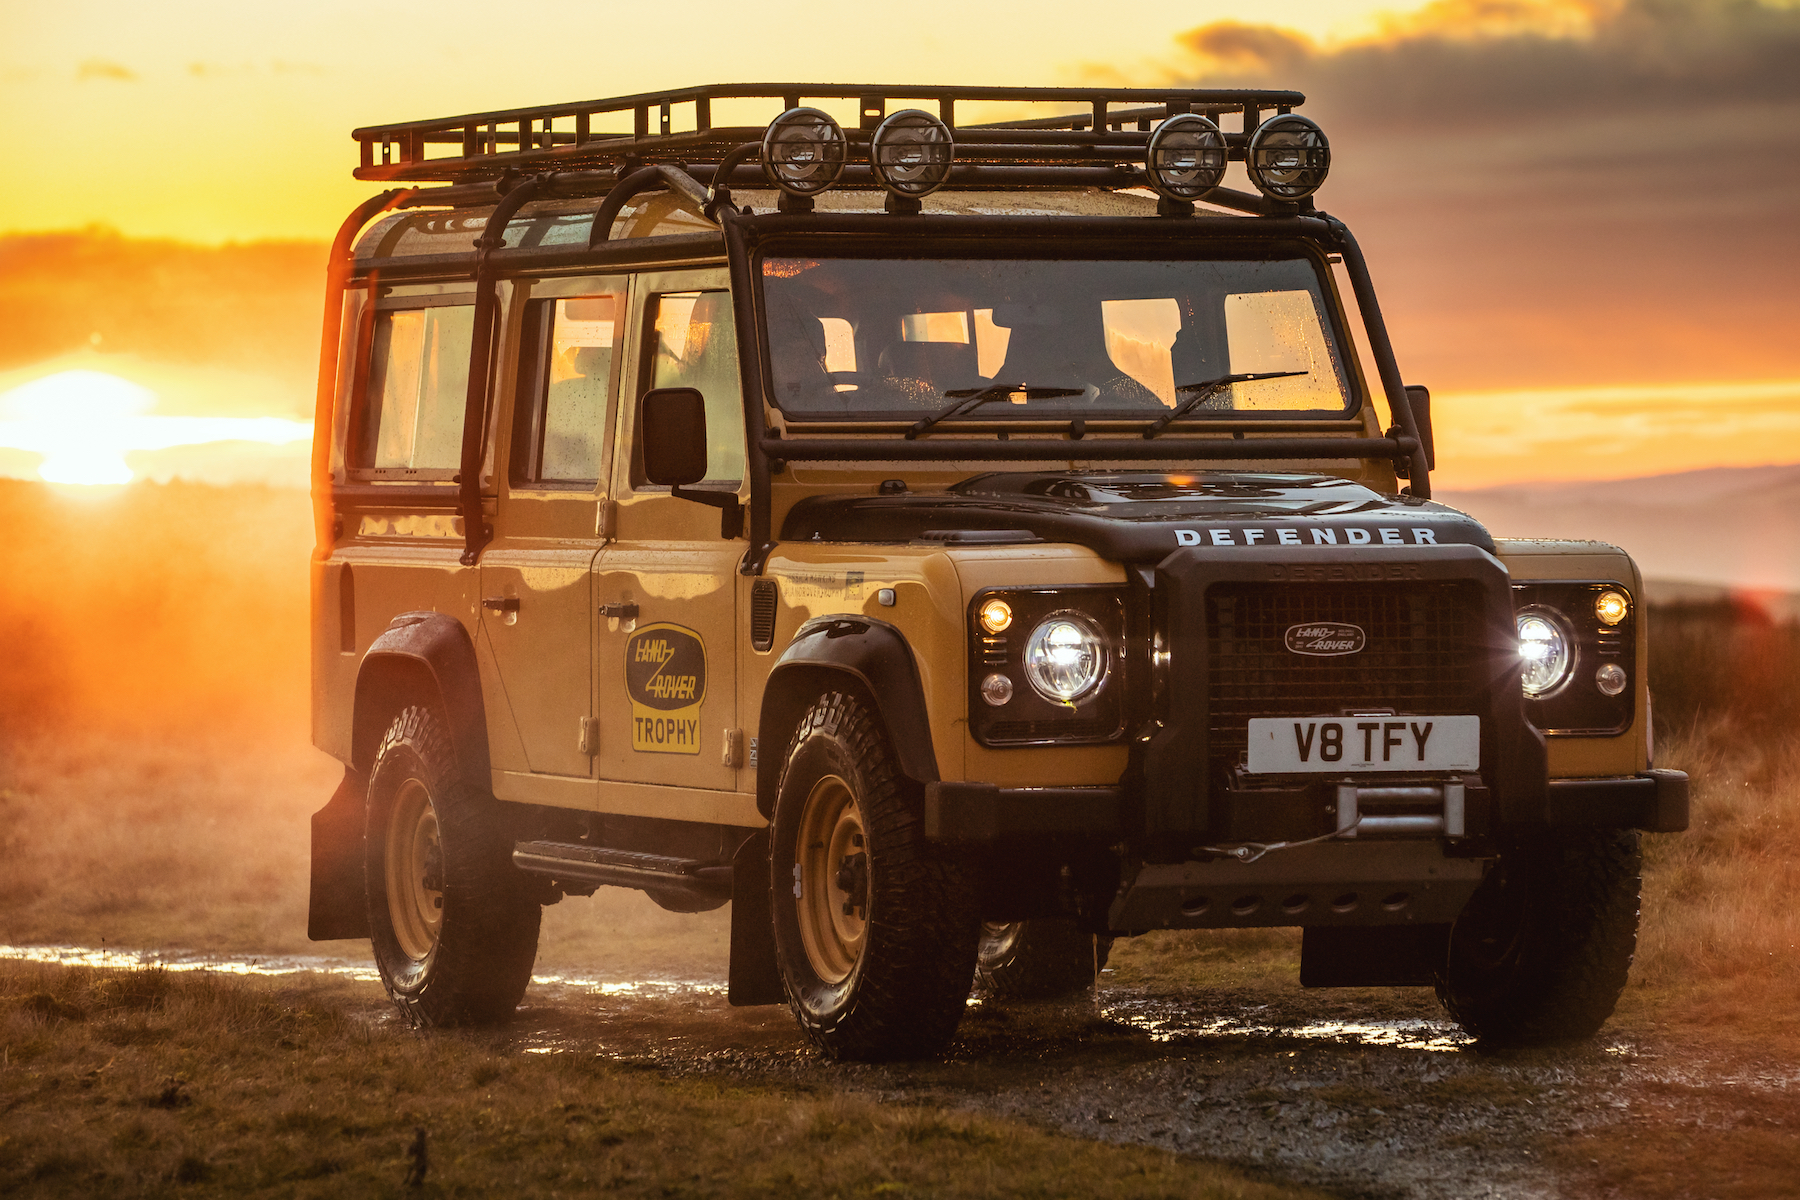 Goodyear OE on classic Land Rover Defender